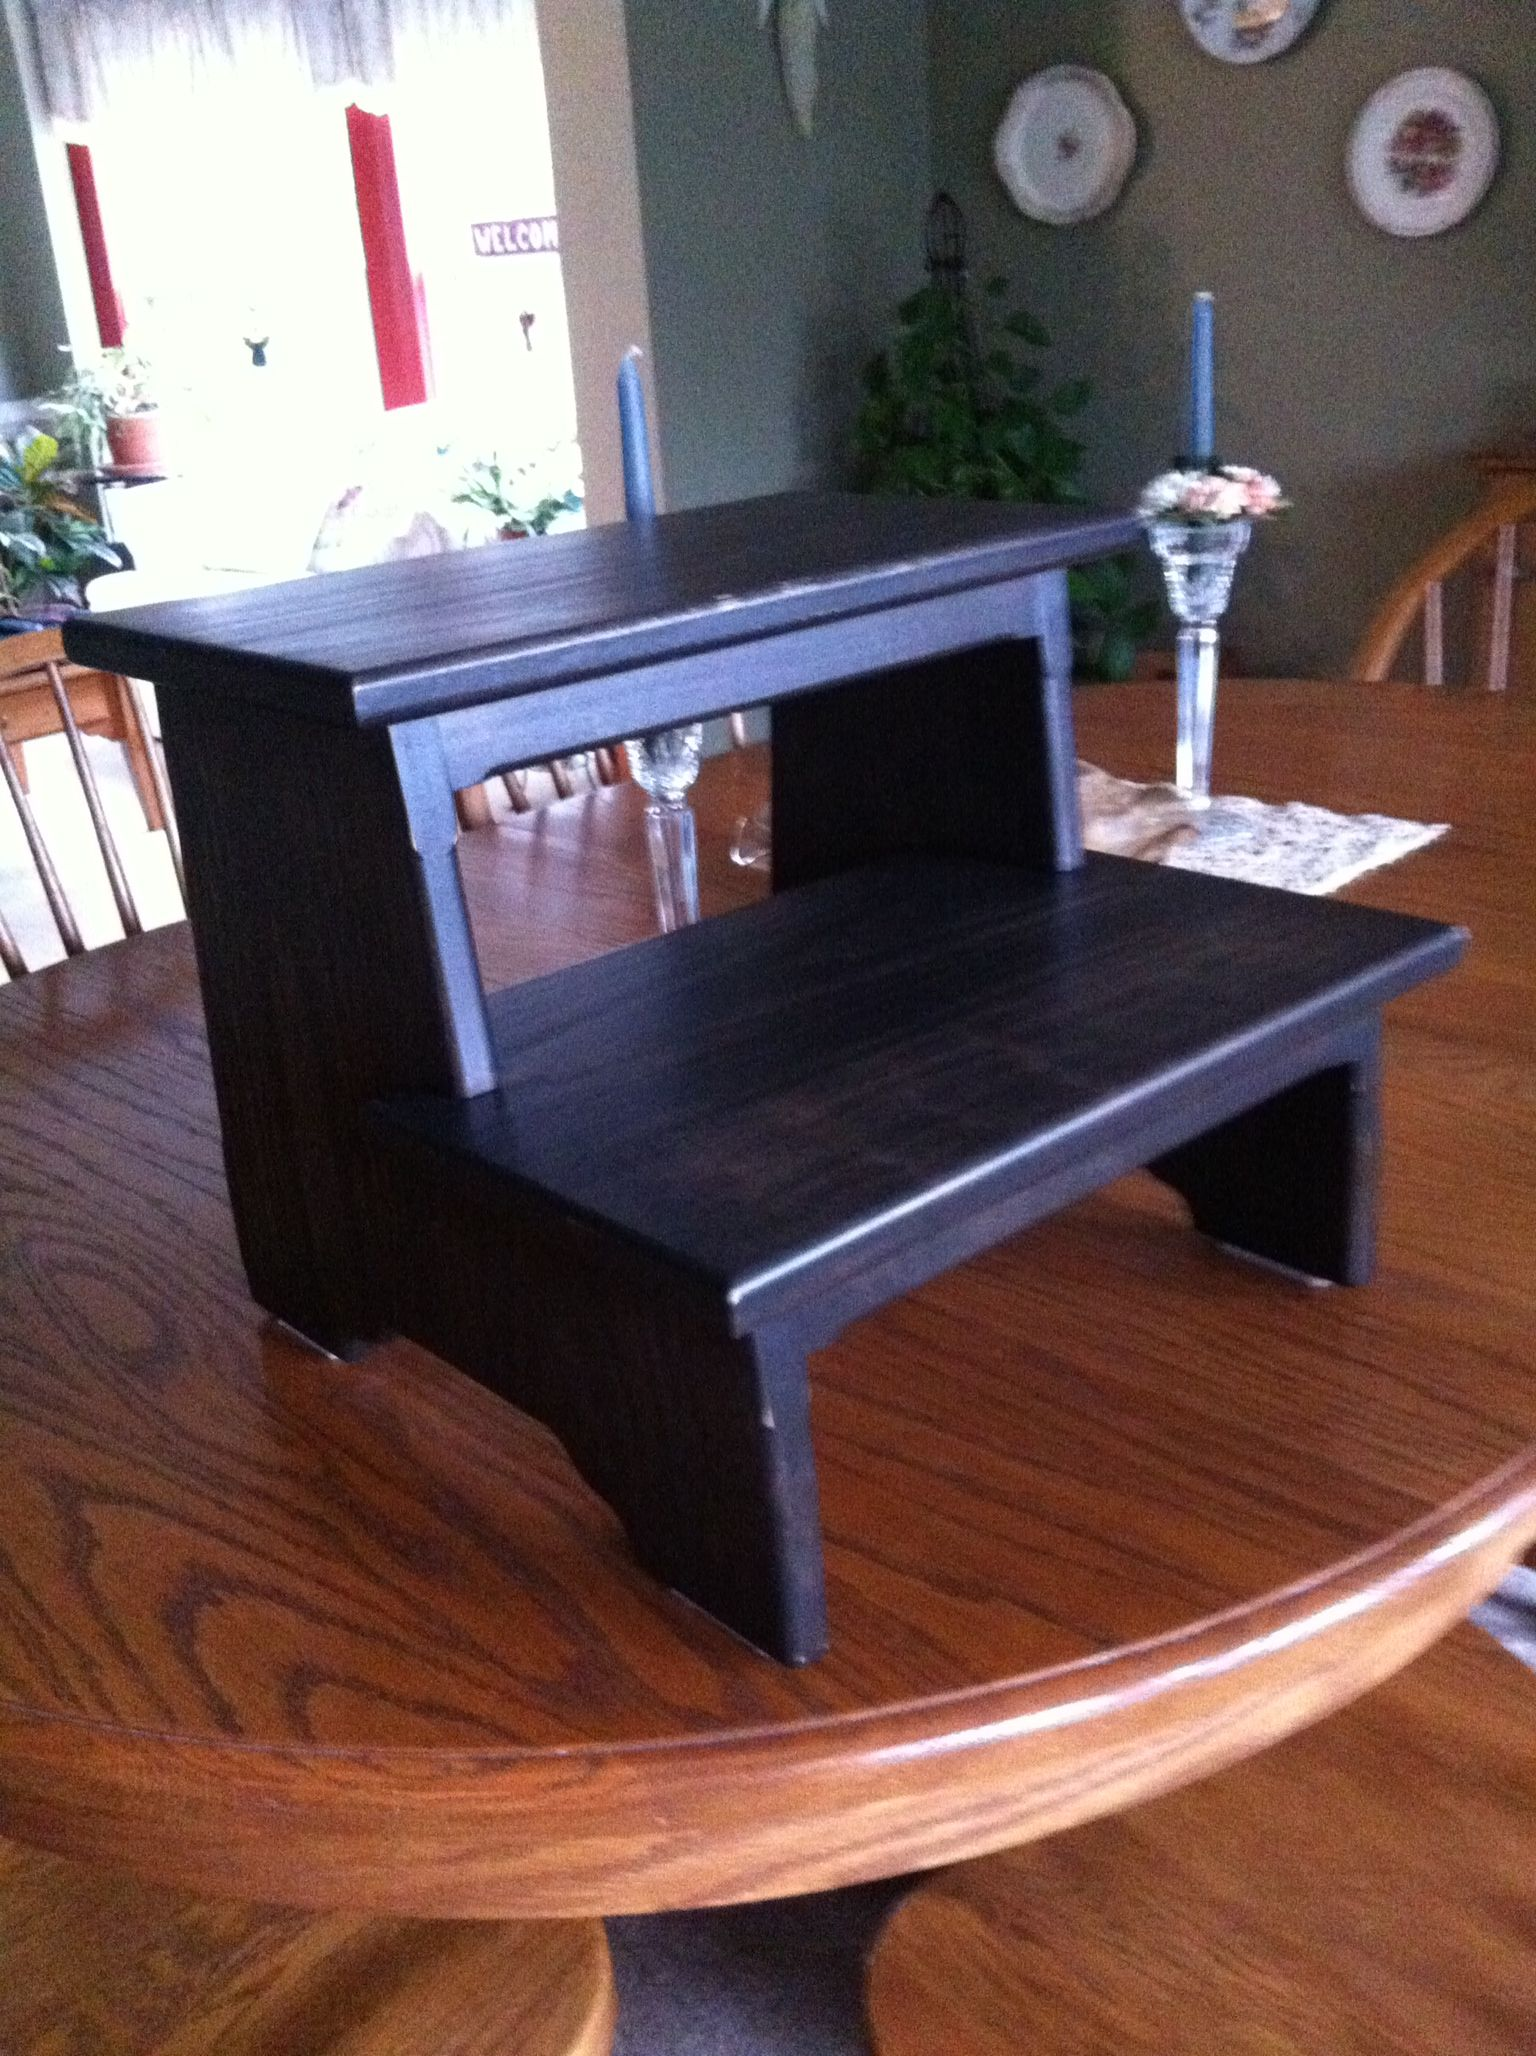 Wooden Step Stool Bedside: Pin By Robert Delesantro On My Creations